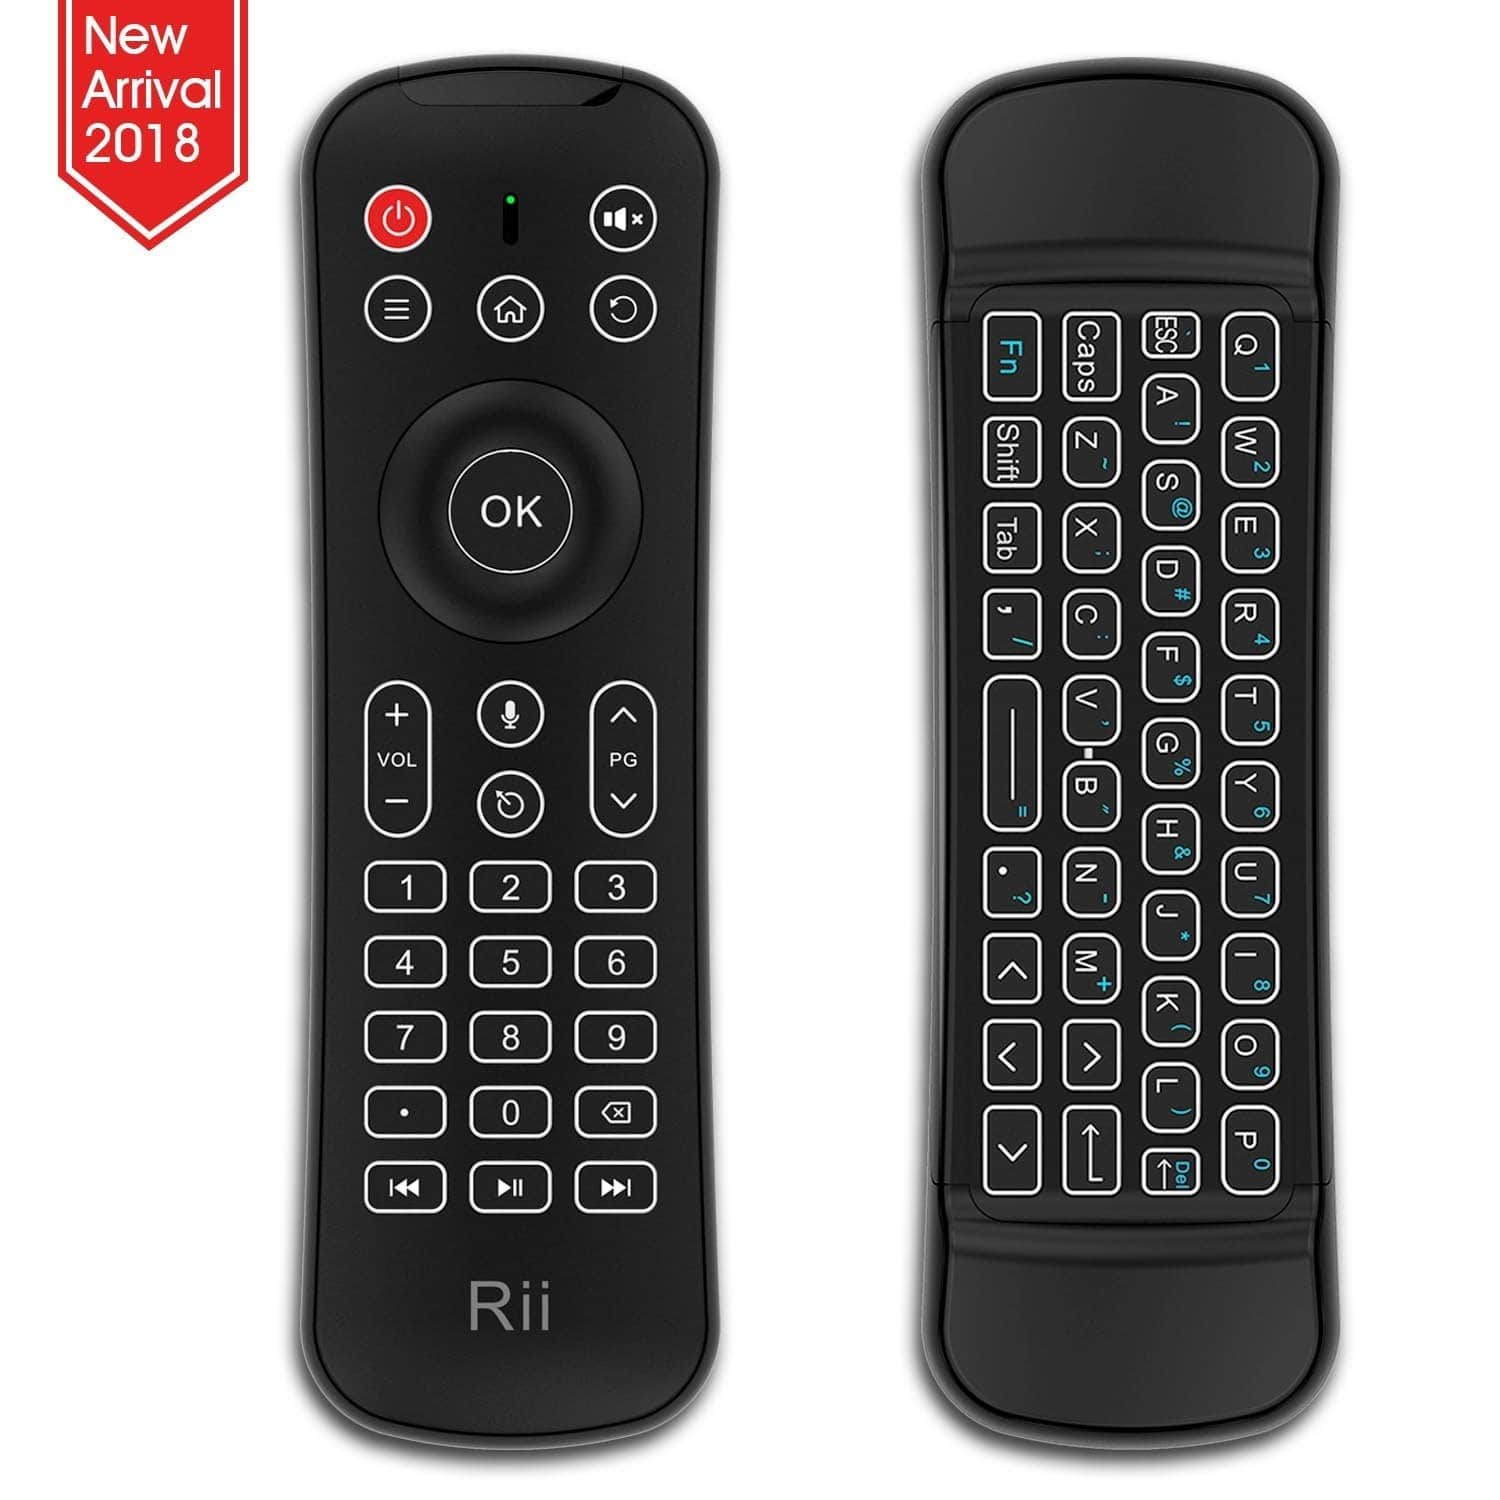 Backlit Multifunctional Wireless Mini Keyboard and Remote Control With Microphone $14.29